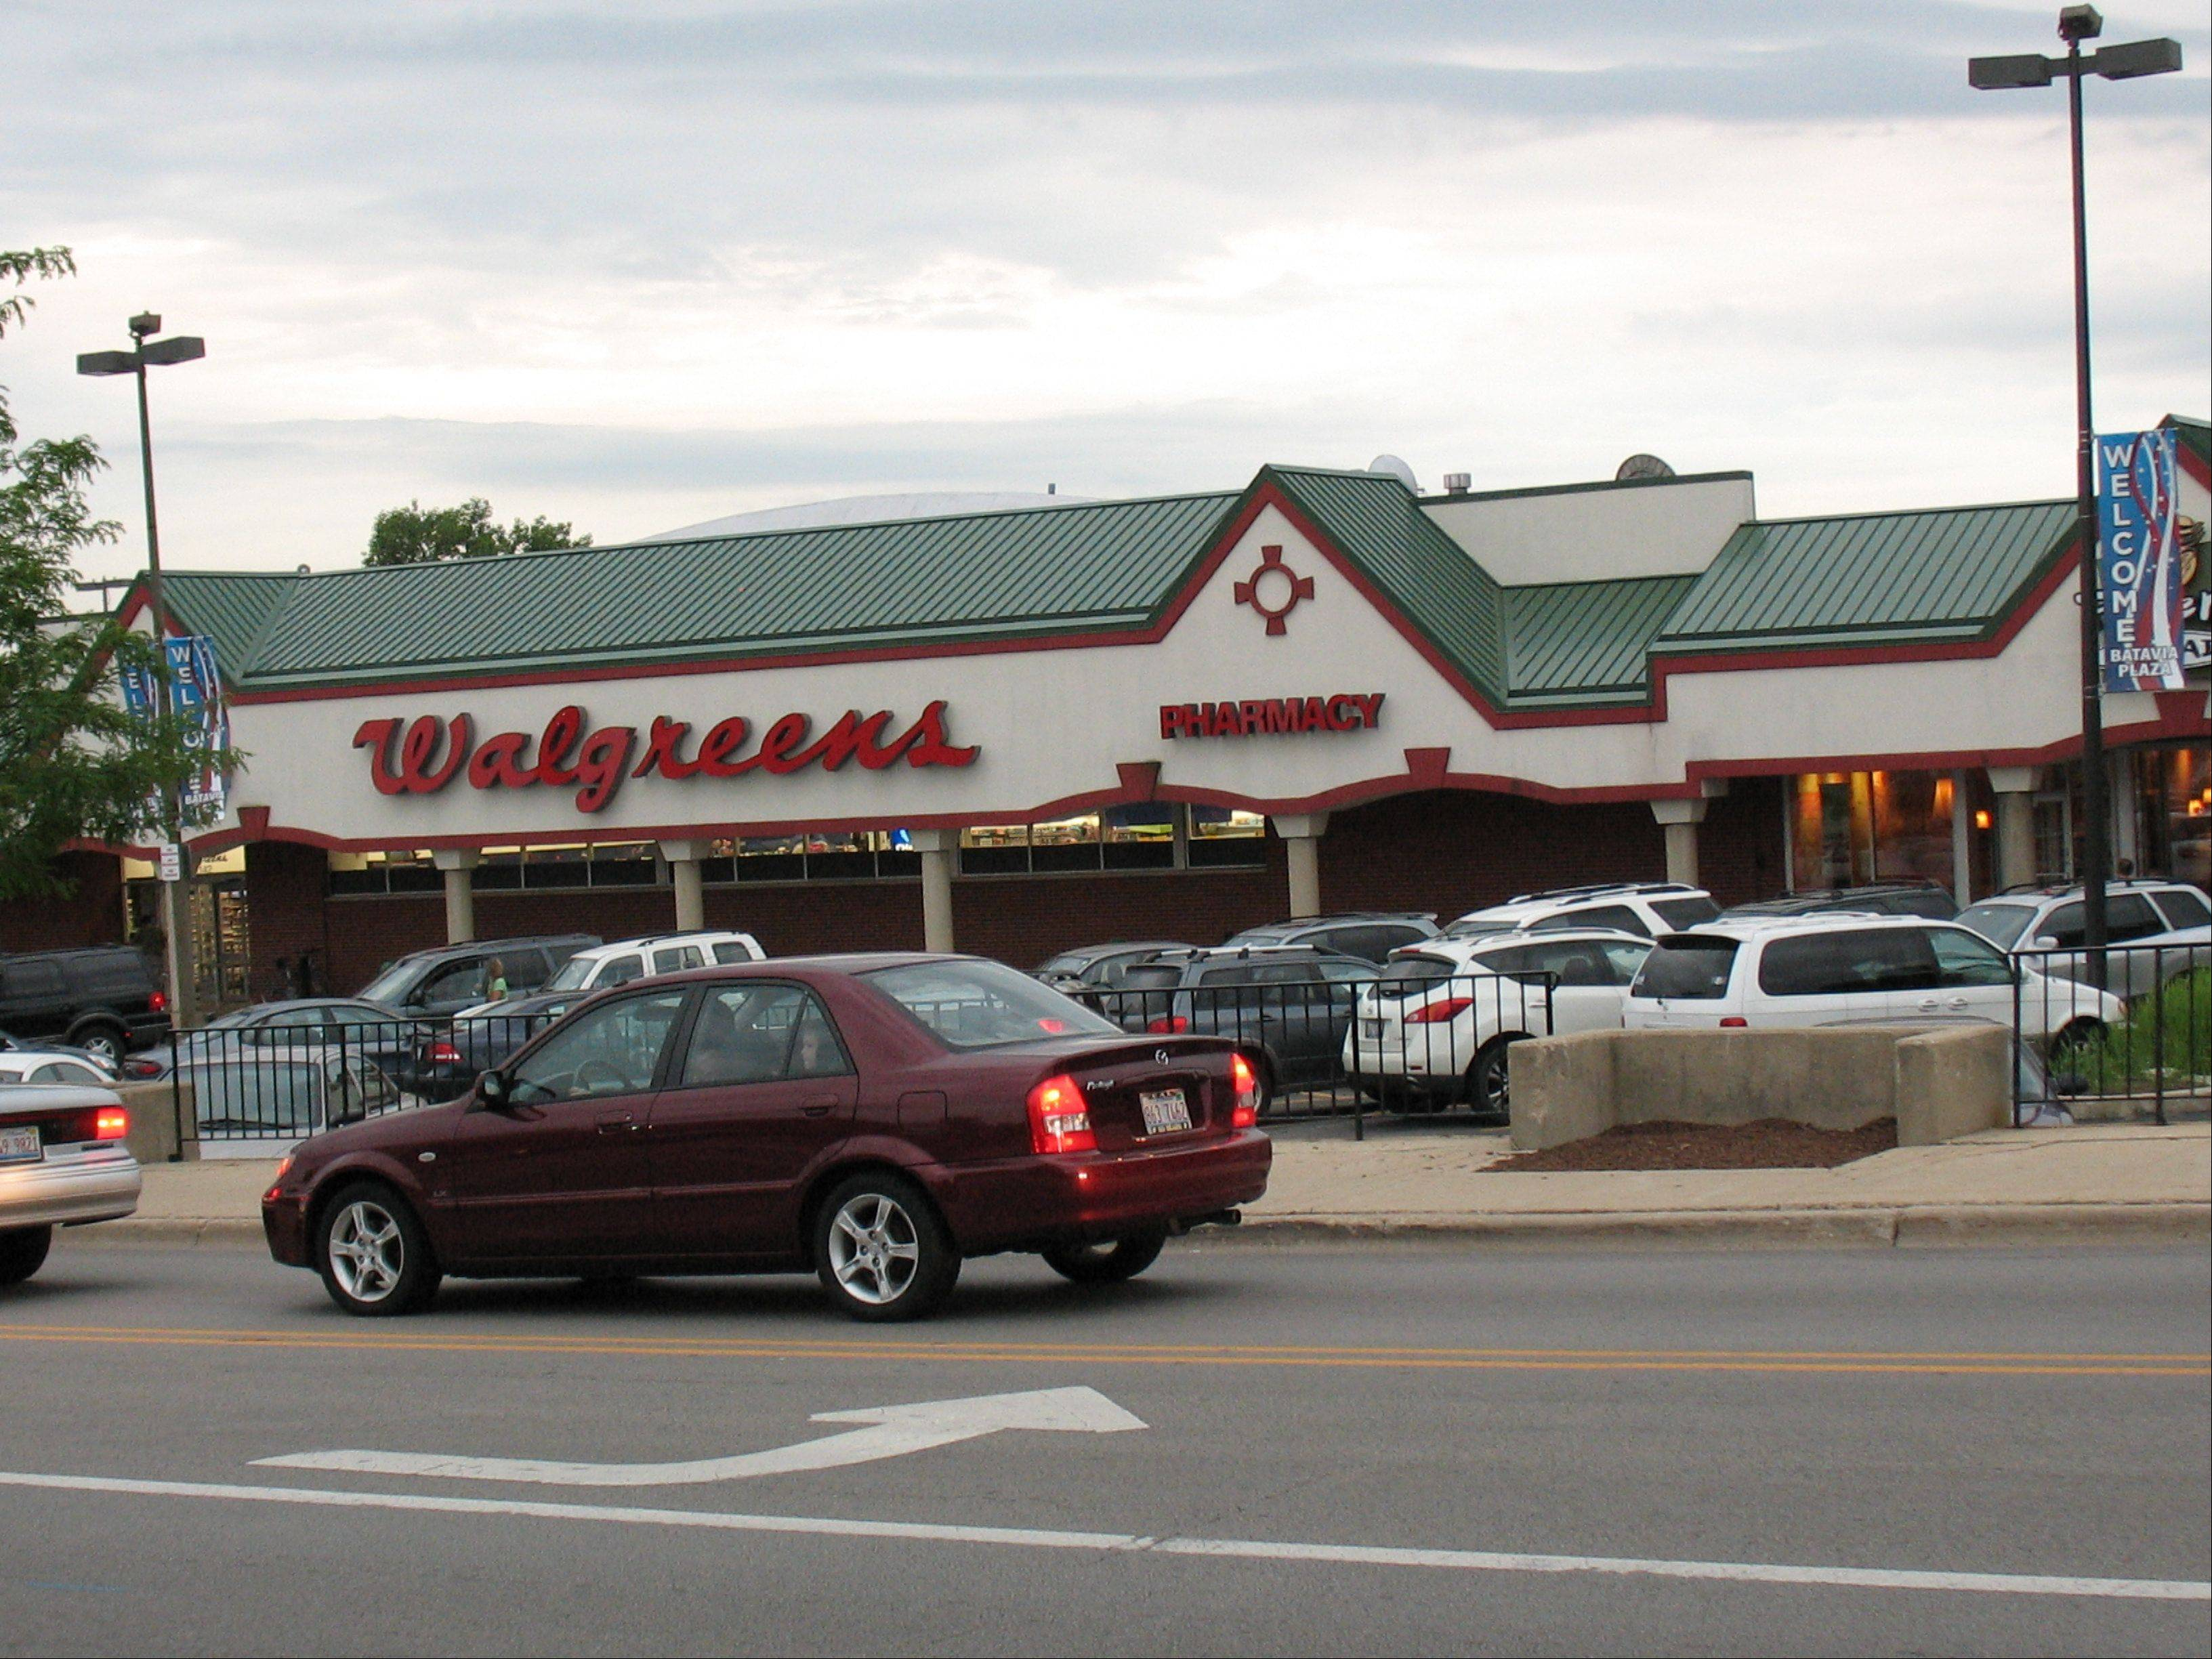 Batavia proposes $1.14 million in aid for new Walgreens